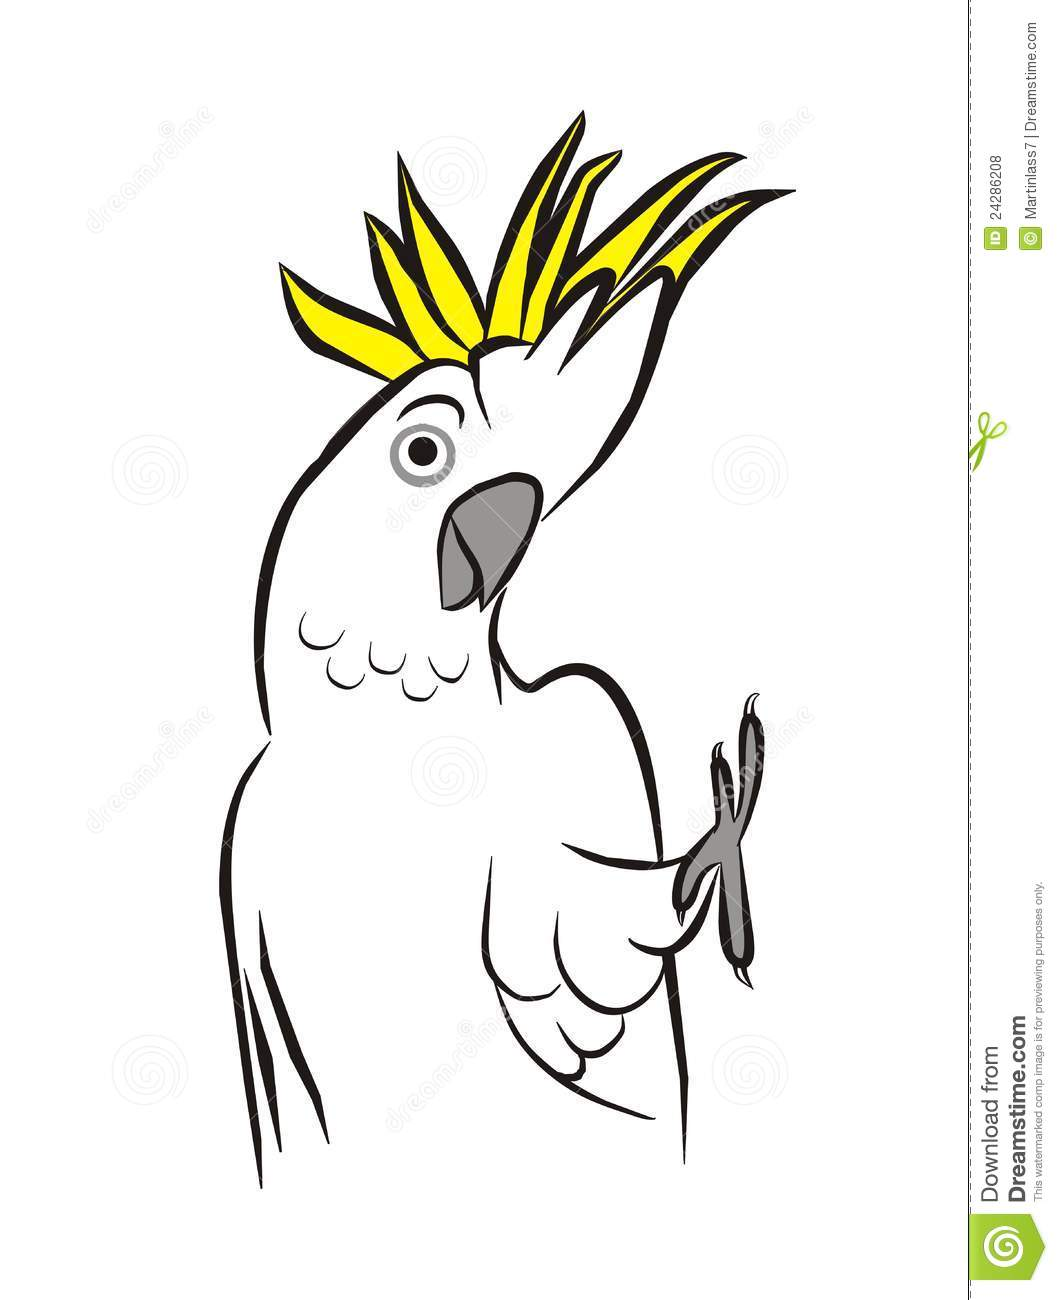 Sulphur-crested Cockatoo clipart #2, Download drawings